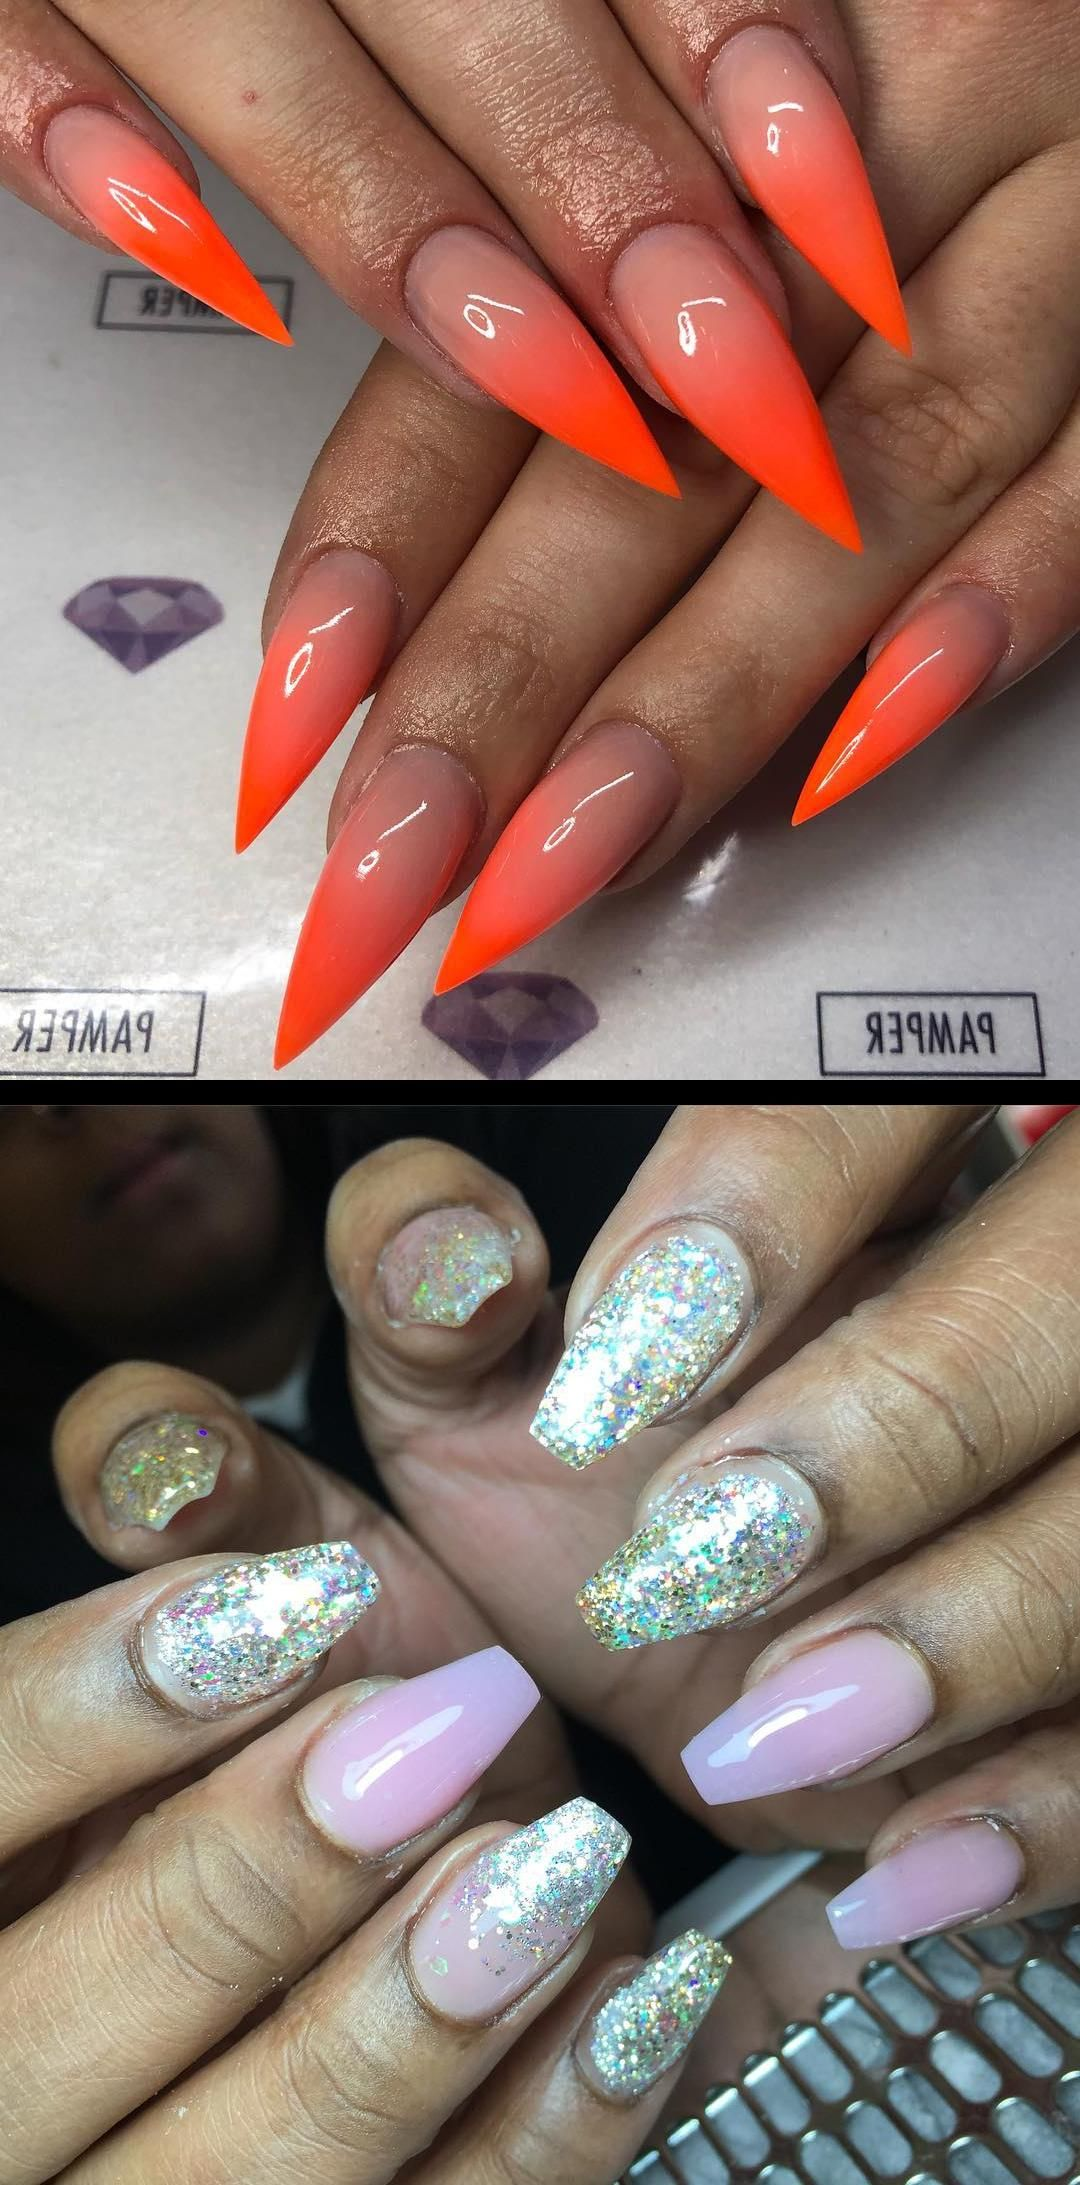 Celestina S Choise 38 Fashion Trends Way To Look More Fashionable 2019 Stiletto Nail Art Jasmine Nails Nails First